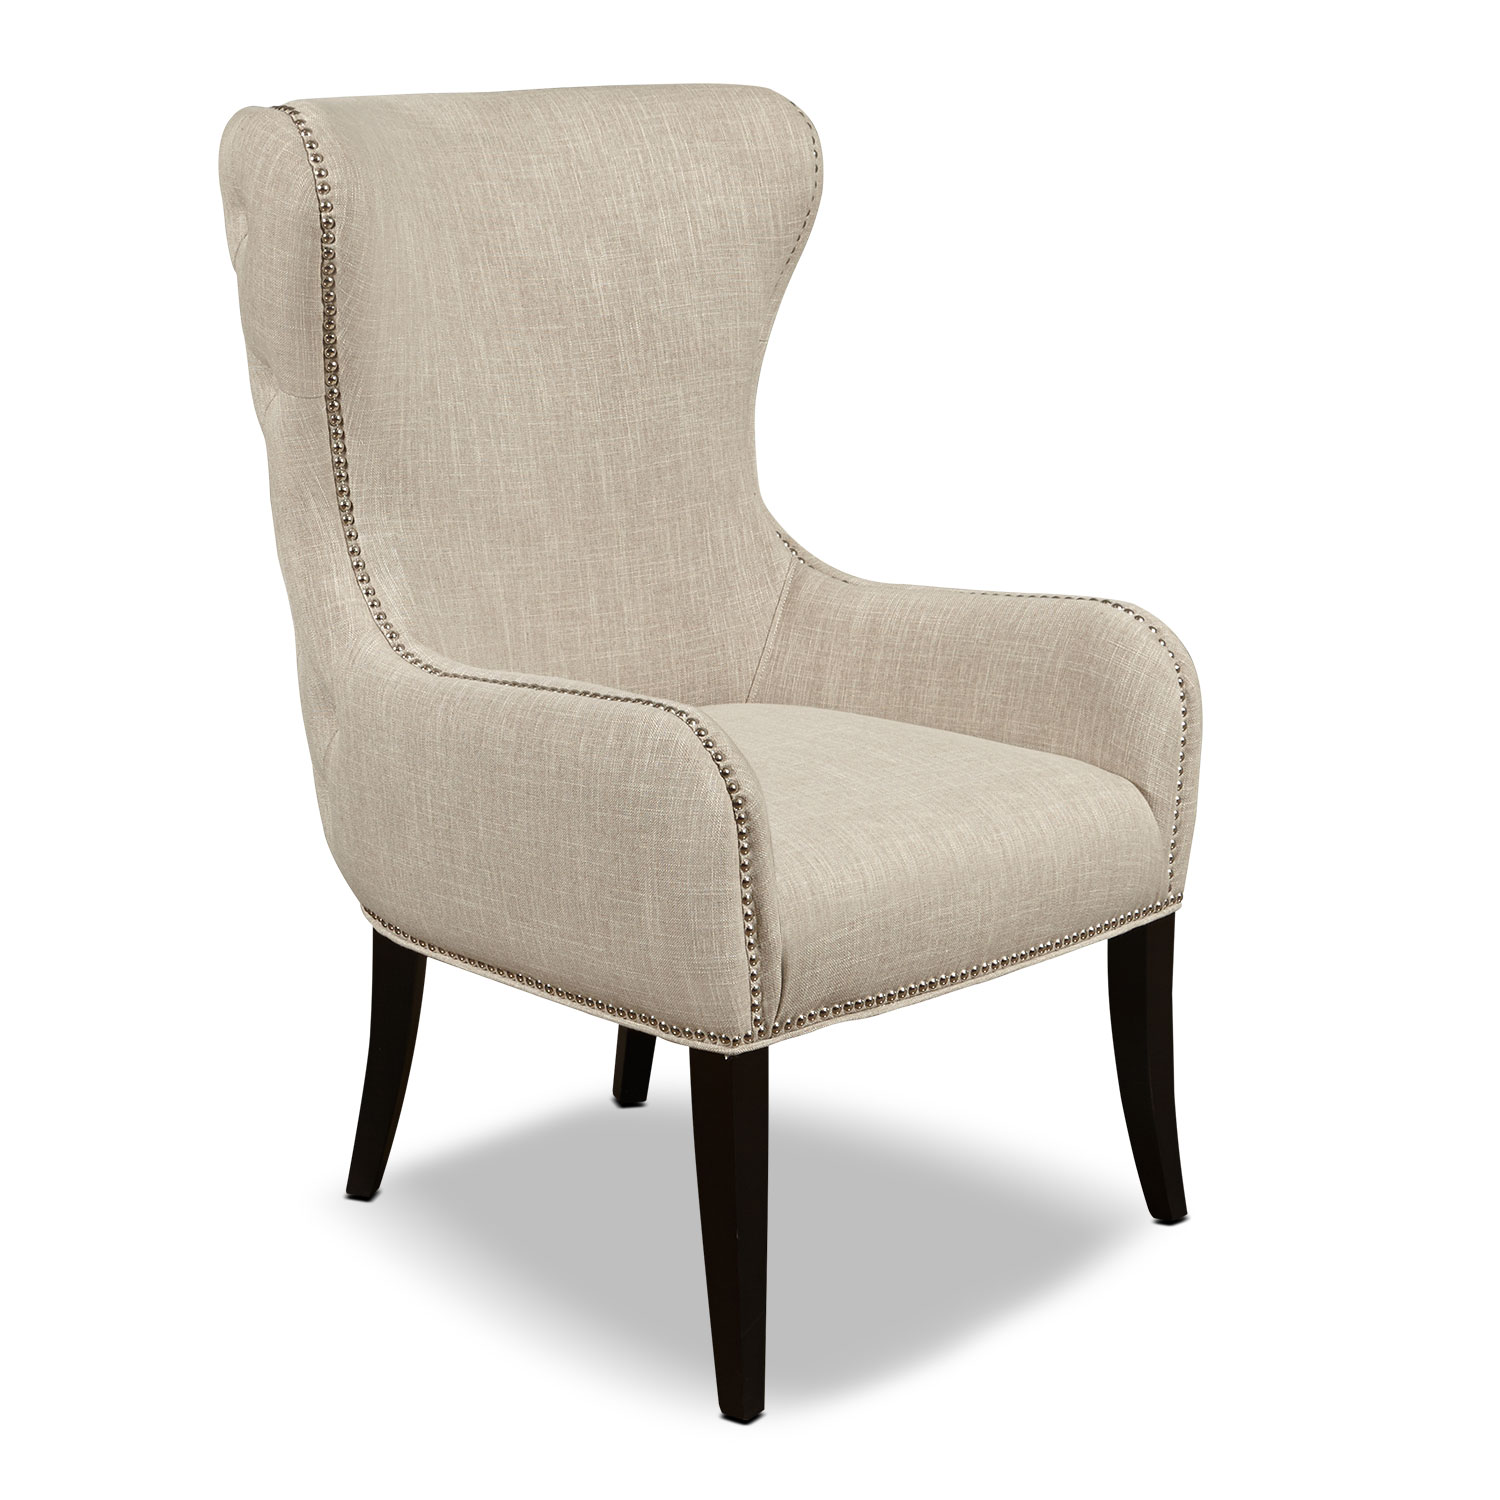 Living Room Furniture - Crossett Accent Chair - Beige